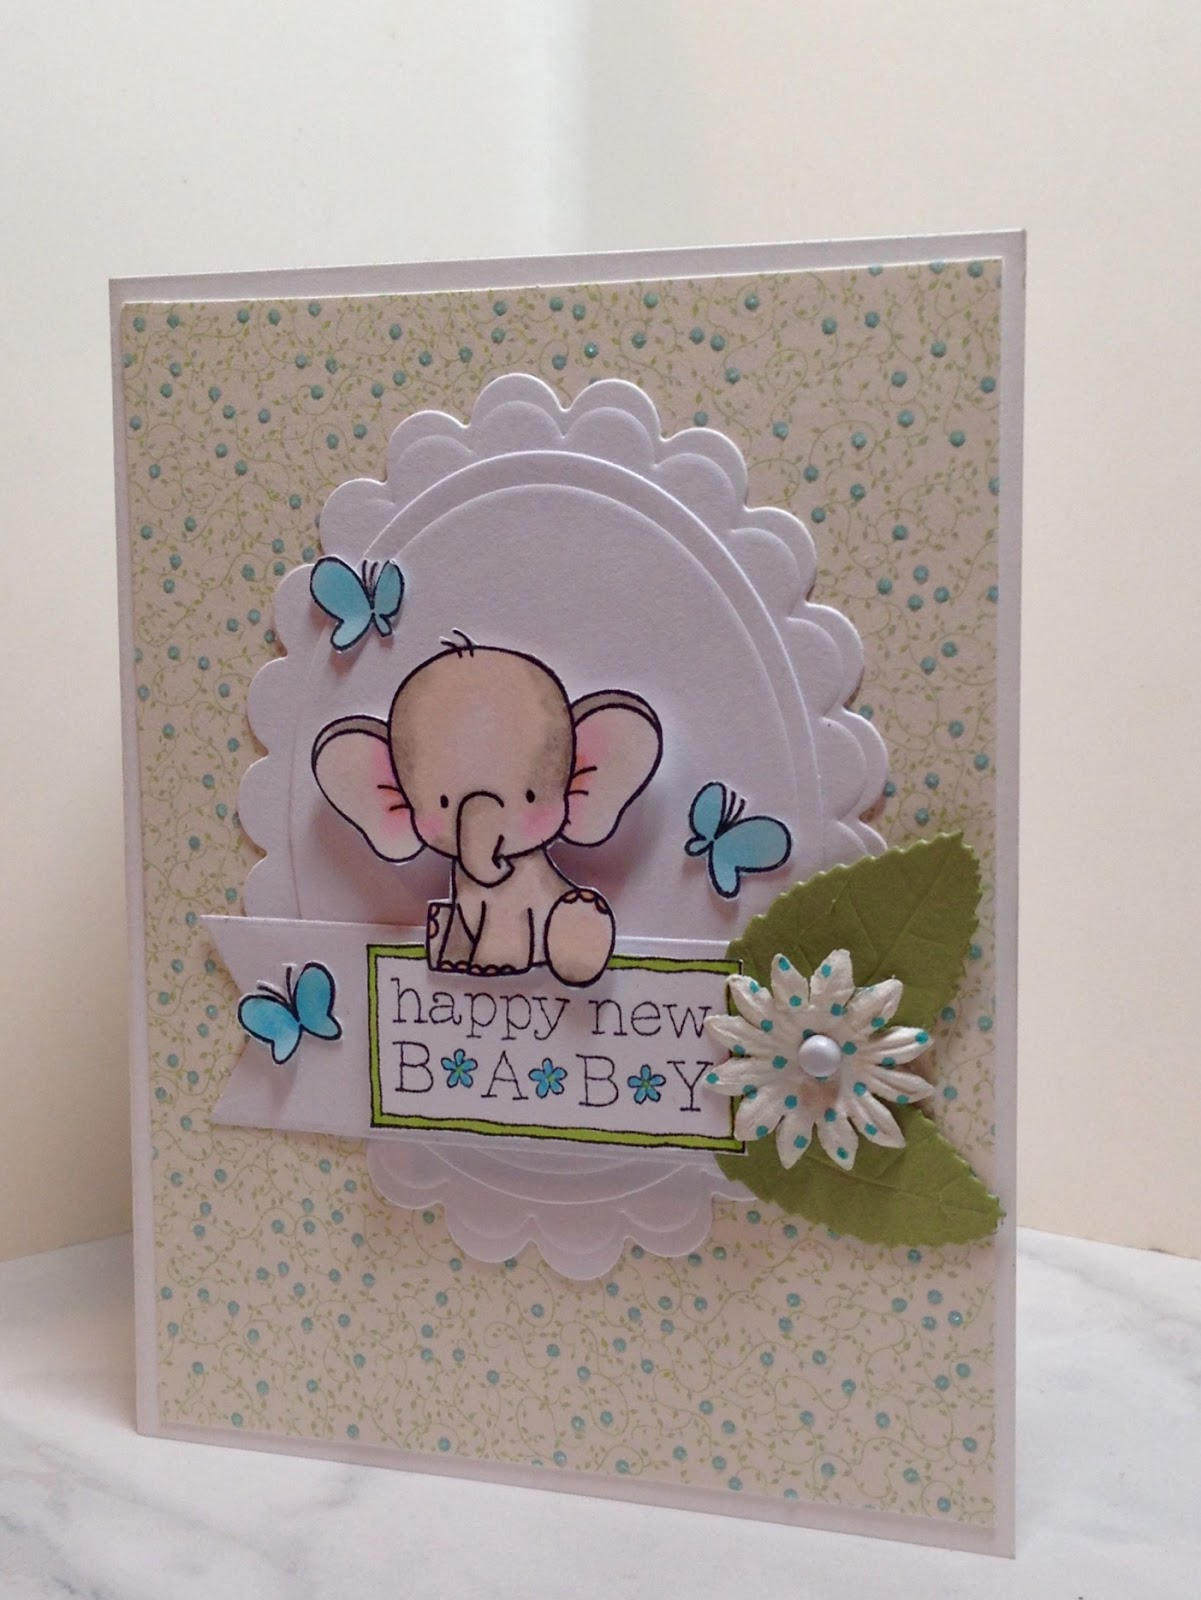 Handmade baby card Personalisation Optional perfect for welcoming a newborn into the world or a first birthday